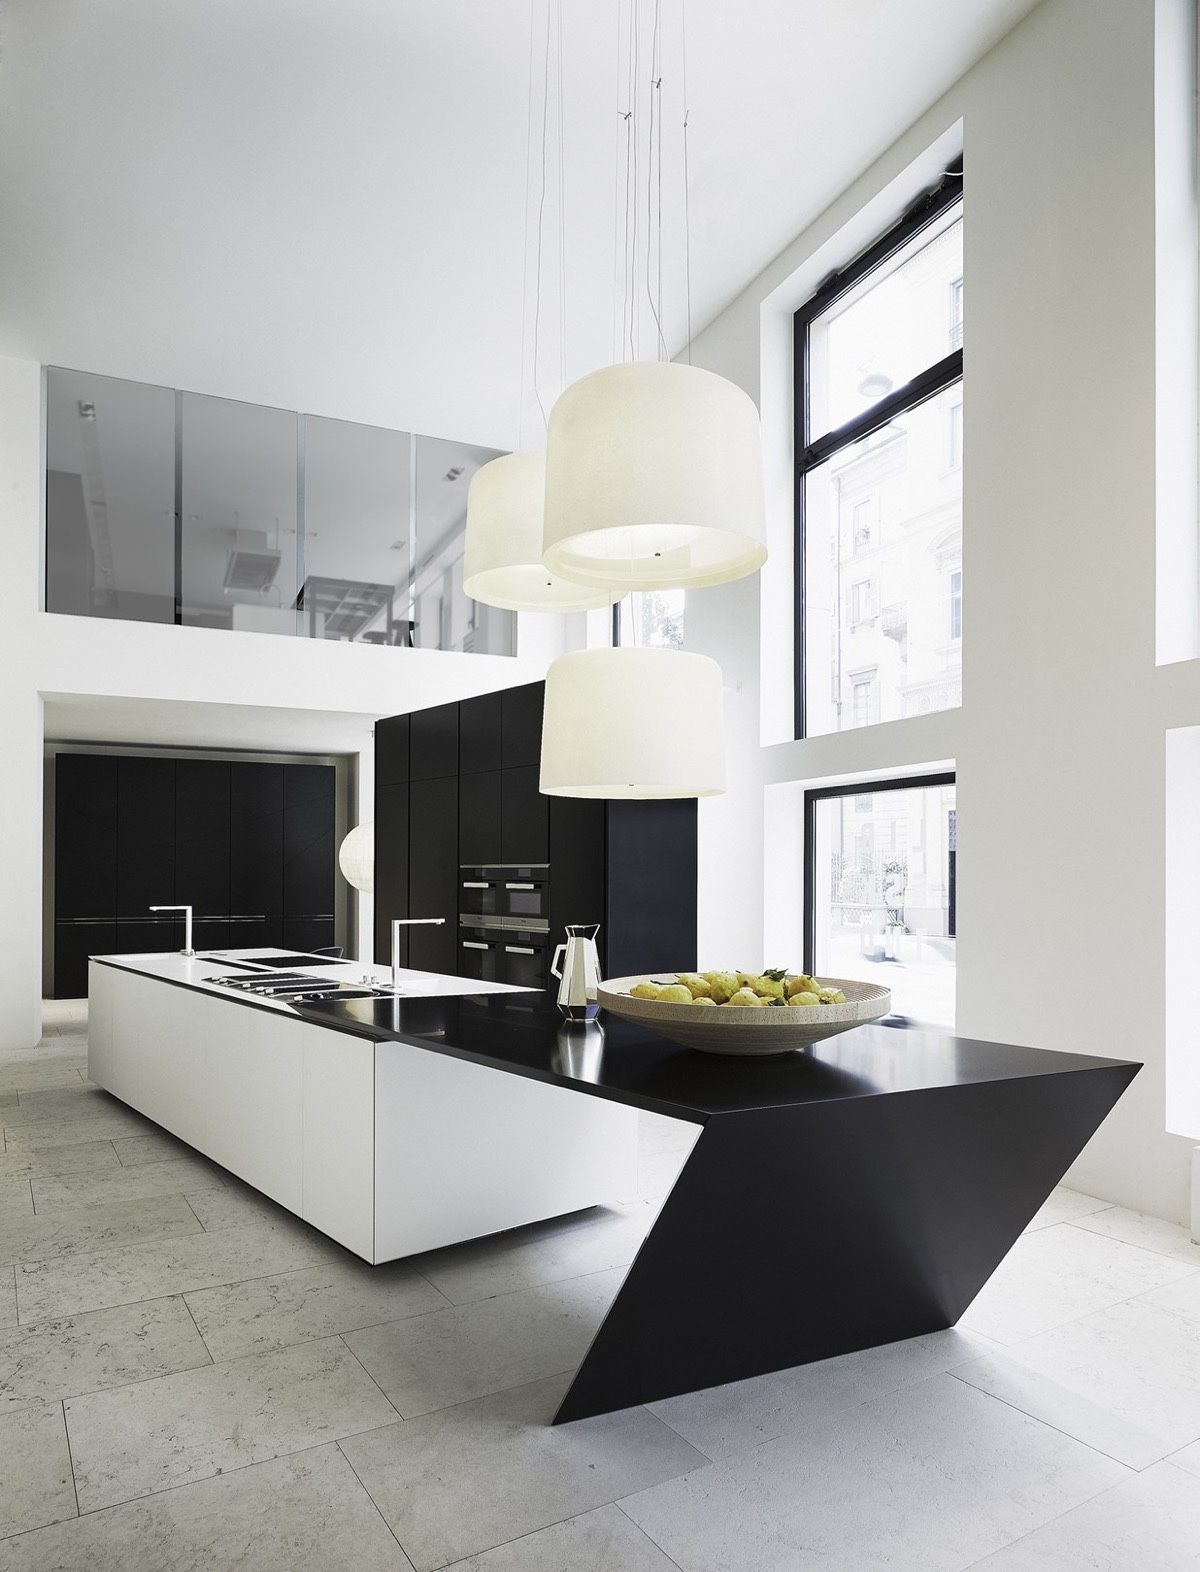 50 modern kitchen designs that use unconventional geometry 50 modern kitchen designs that use unconventional geometry